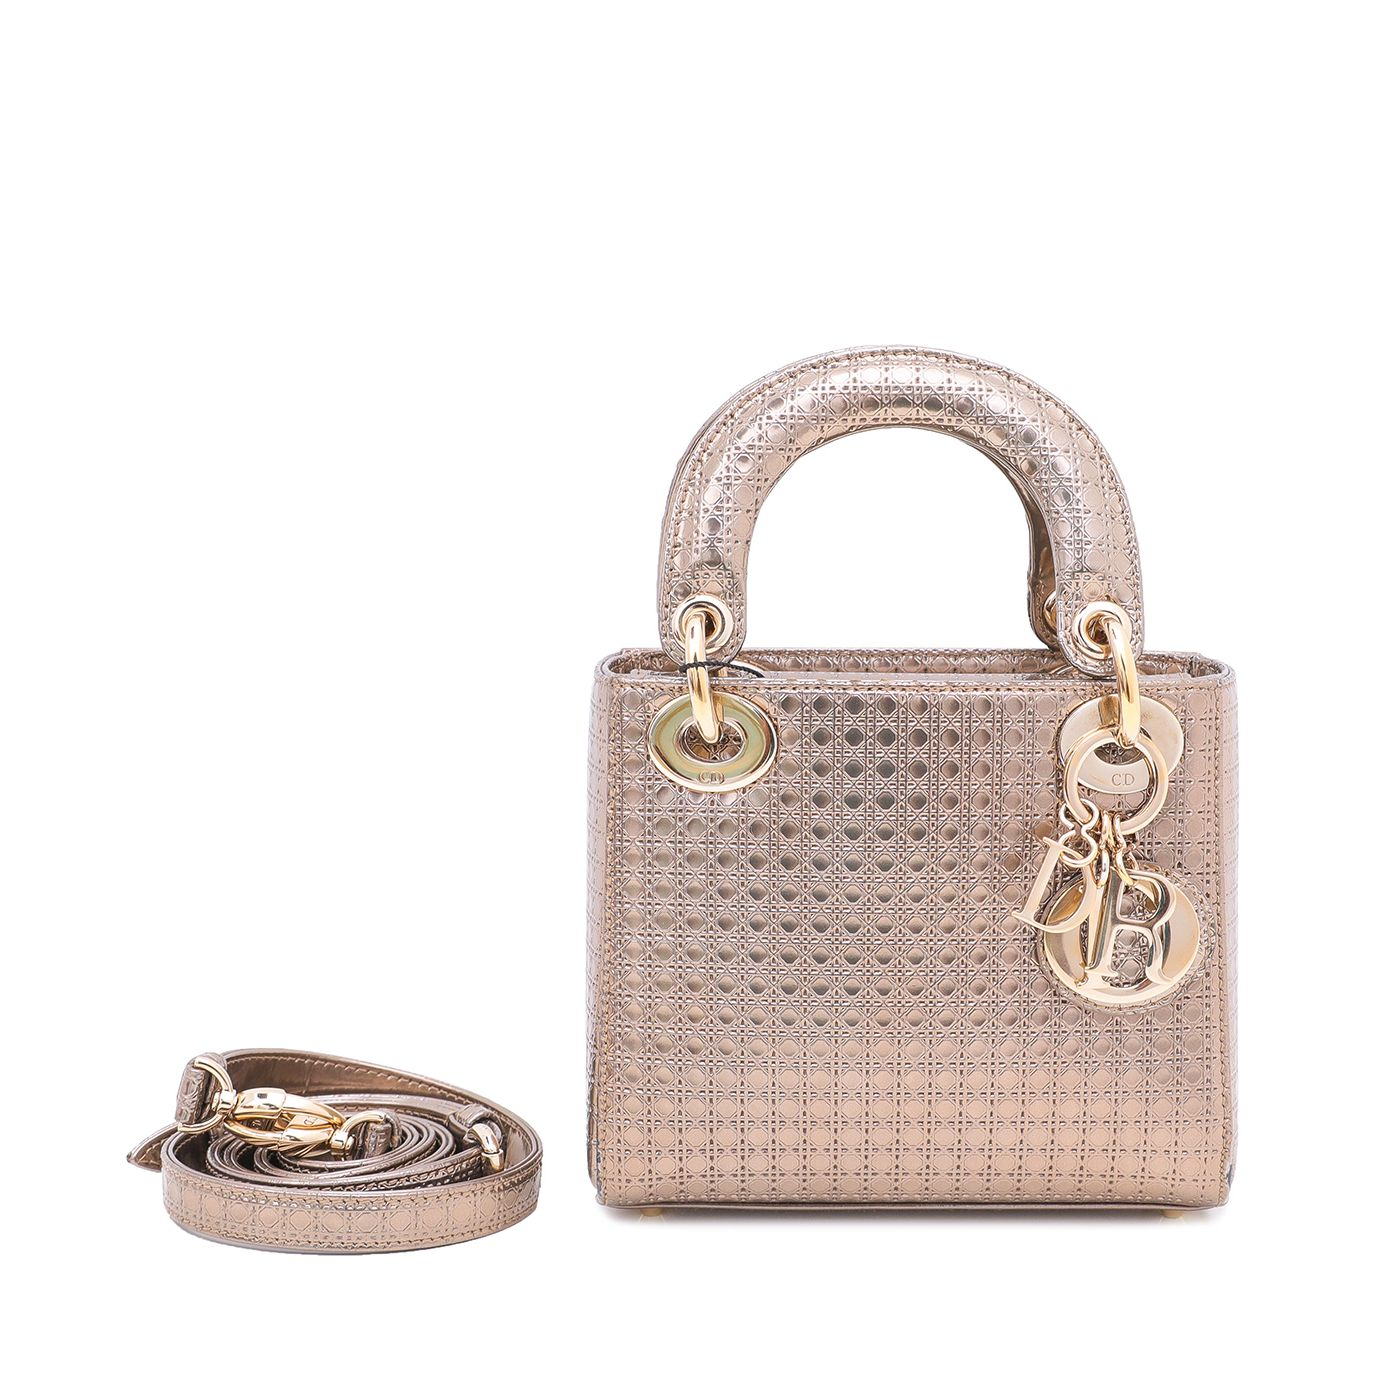 Christian Dior Metallic Champagne Lady Dior Micro Cannage Bag